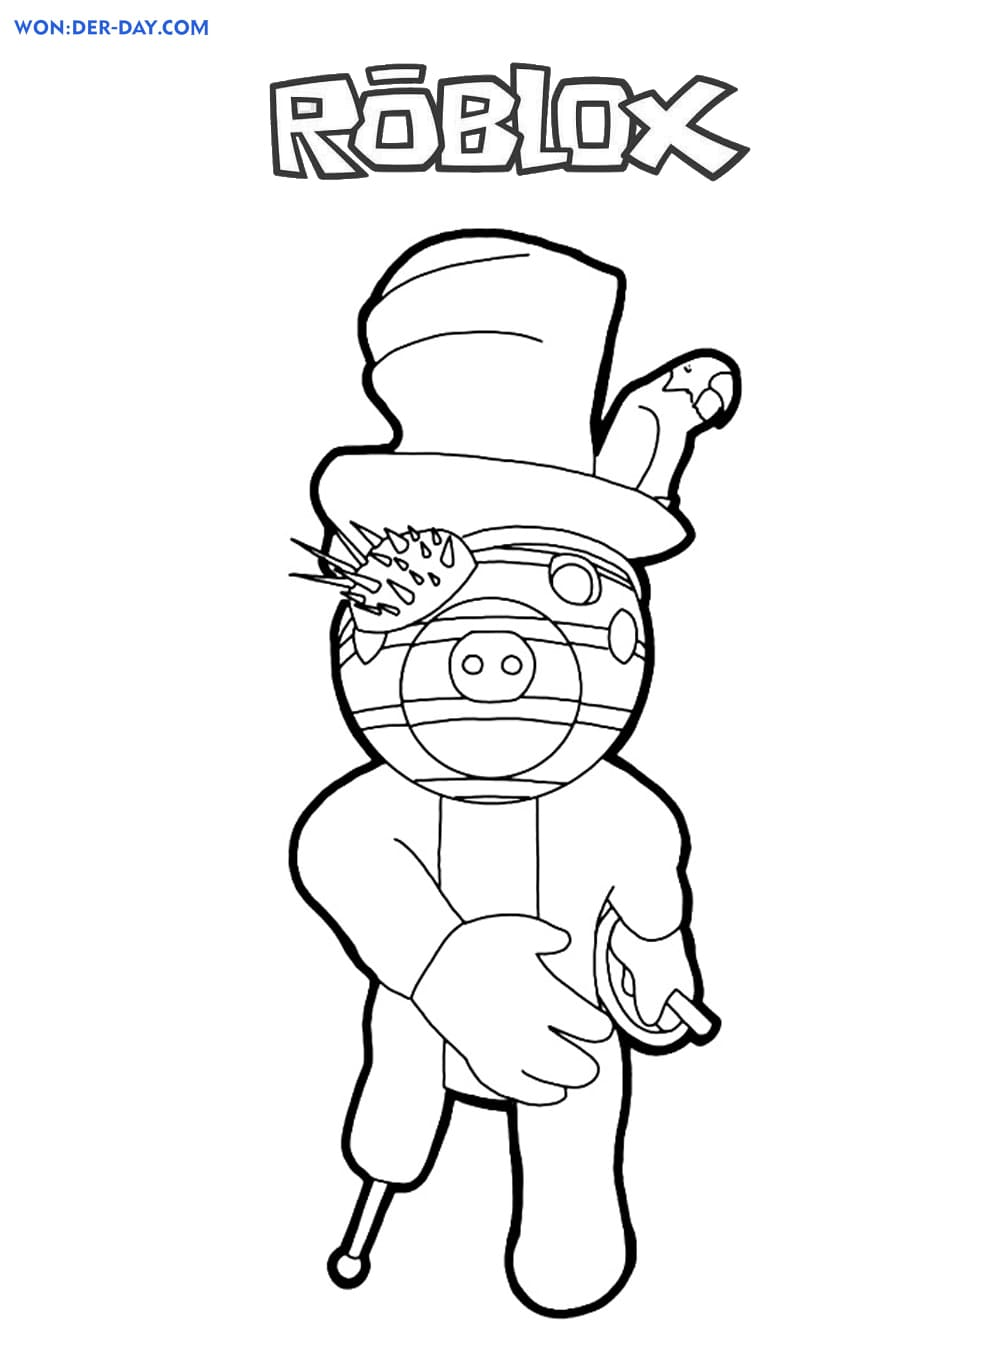 Piggy Roblox coloring pages | WONDER DAY